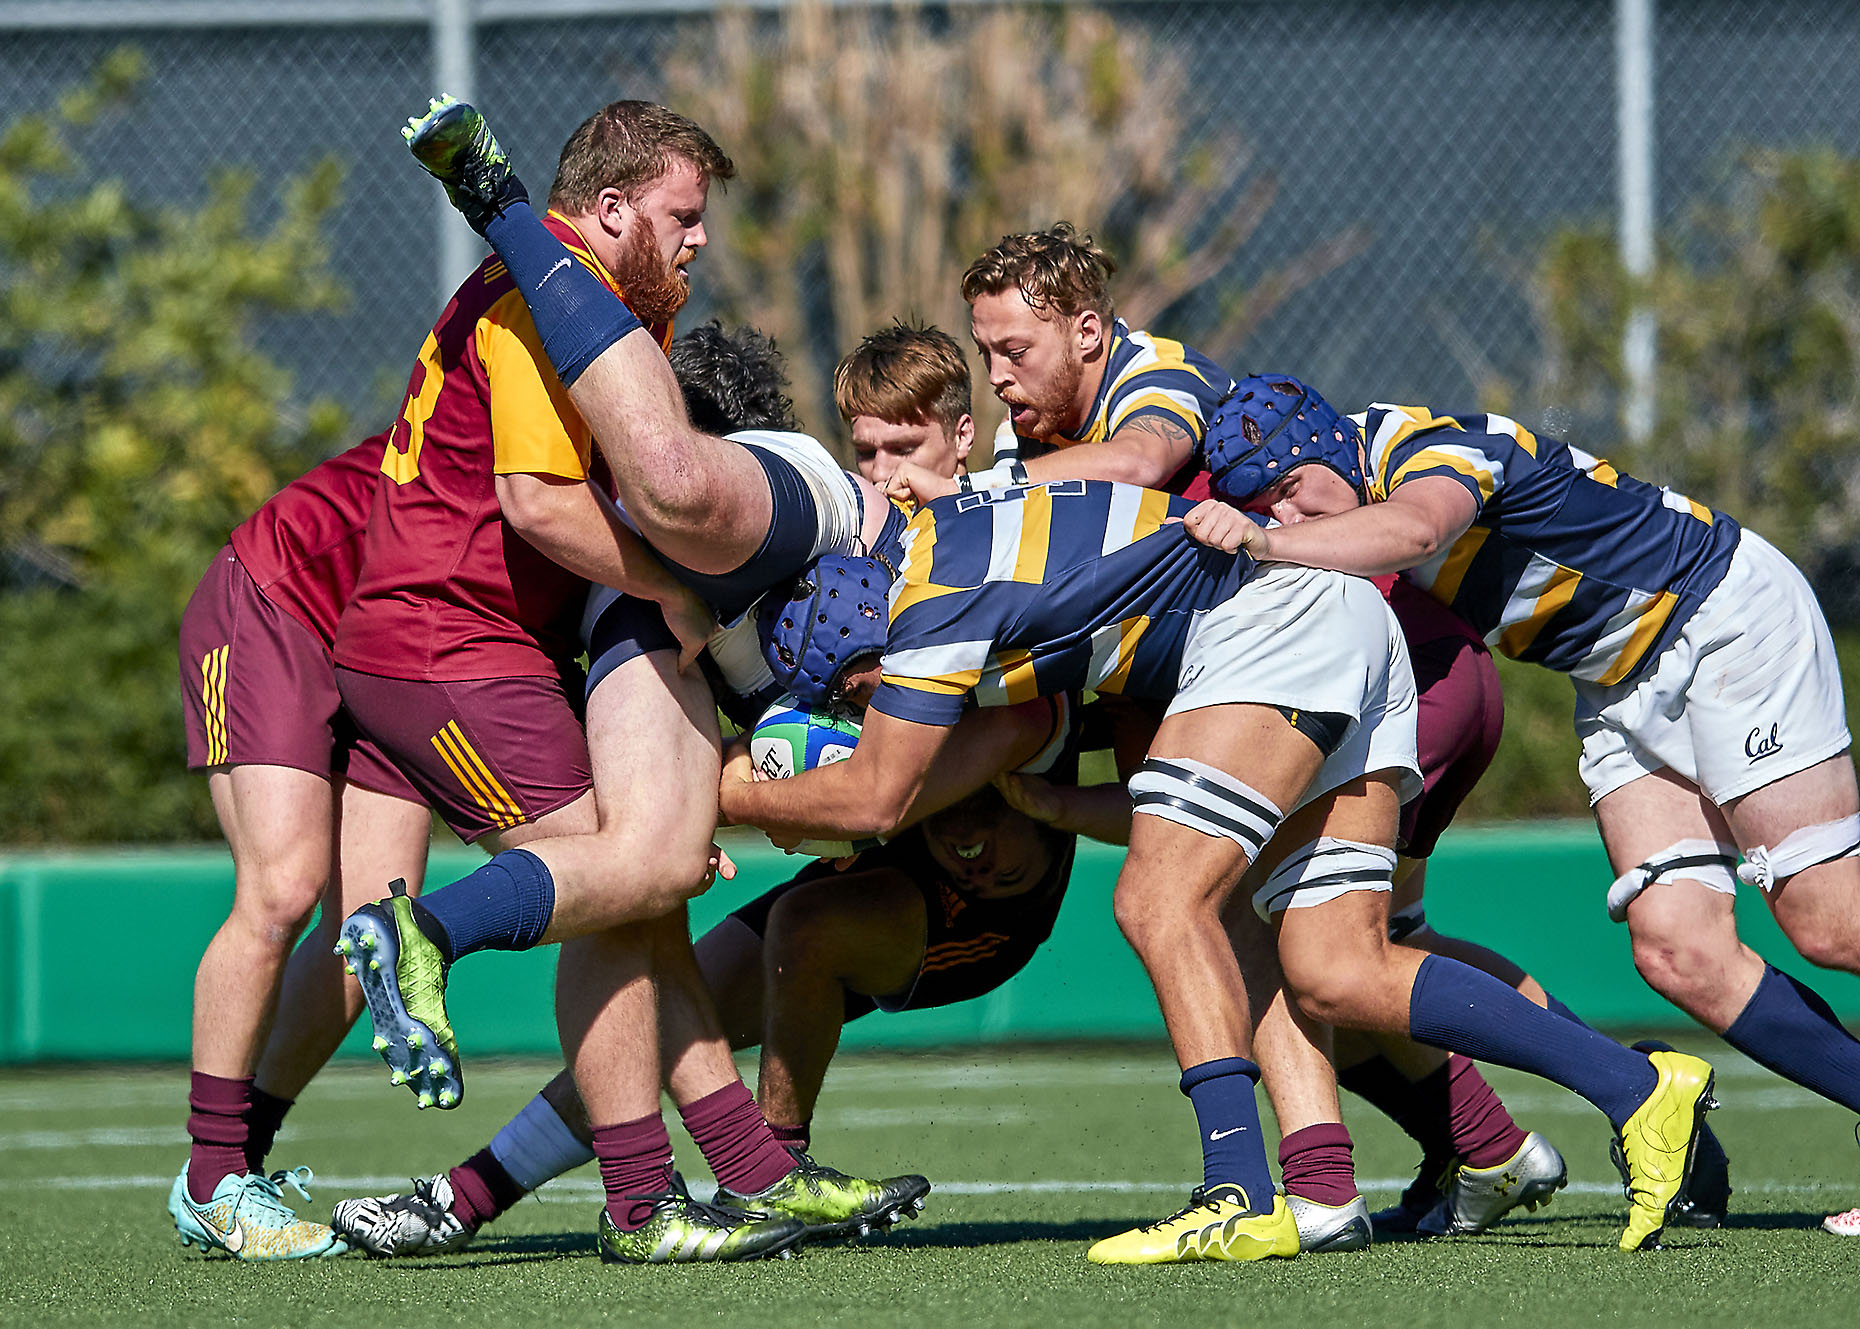 rsellers_170211_CalRugby_ASU_1219